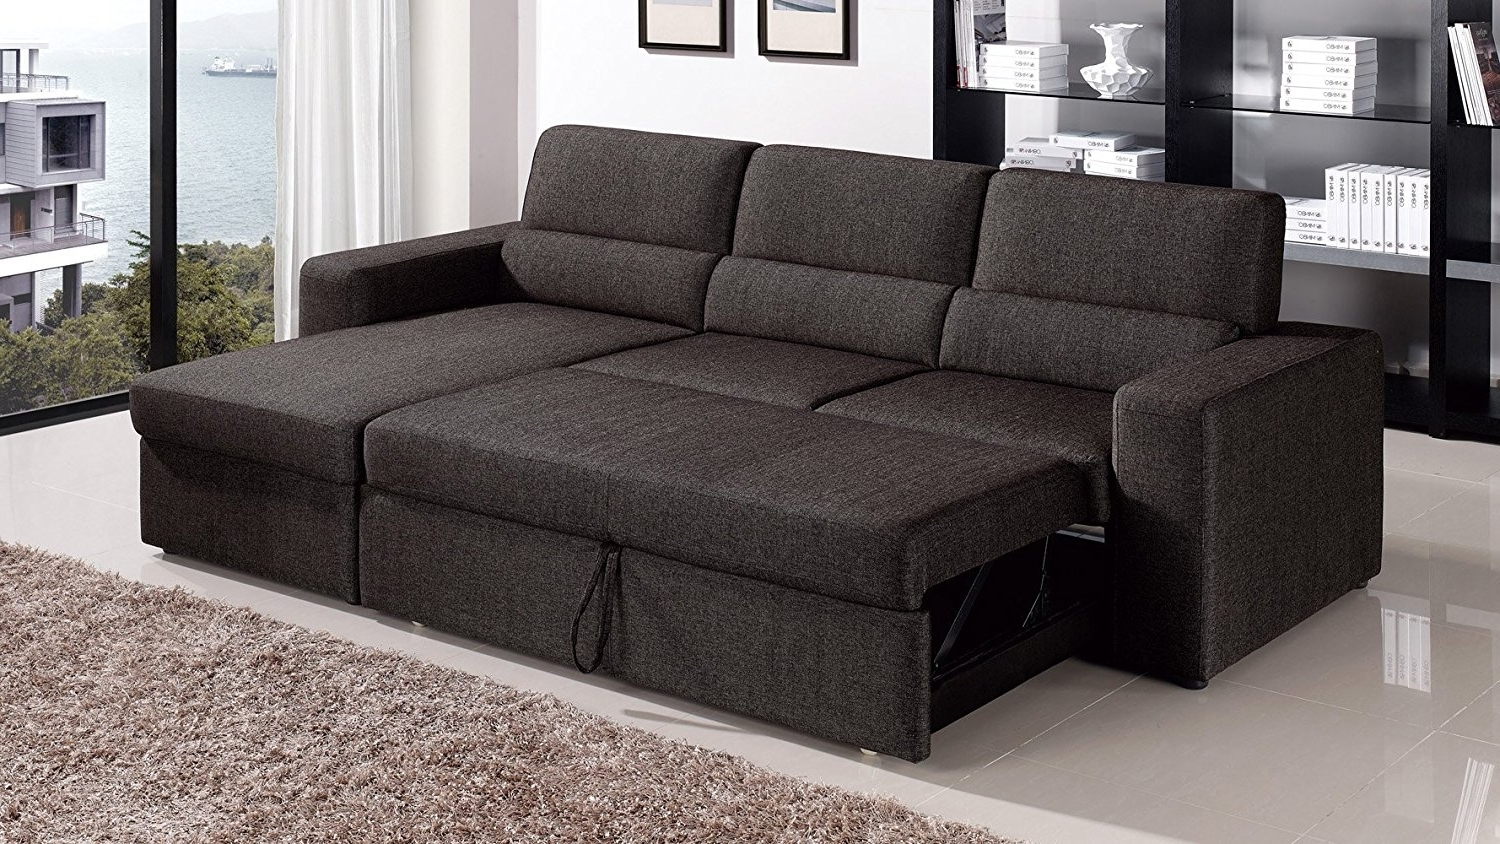 Chaise Sofa Sleepers Within Preferred Amazon: Black/brown Clubber Sleeper Sectional Sofa – Right (View 11 of 15)